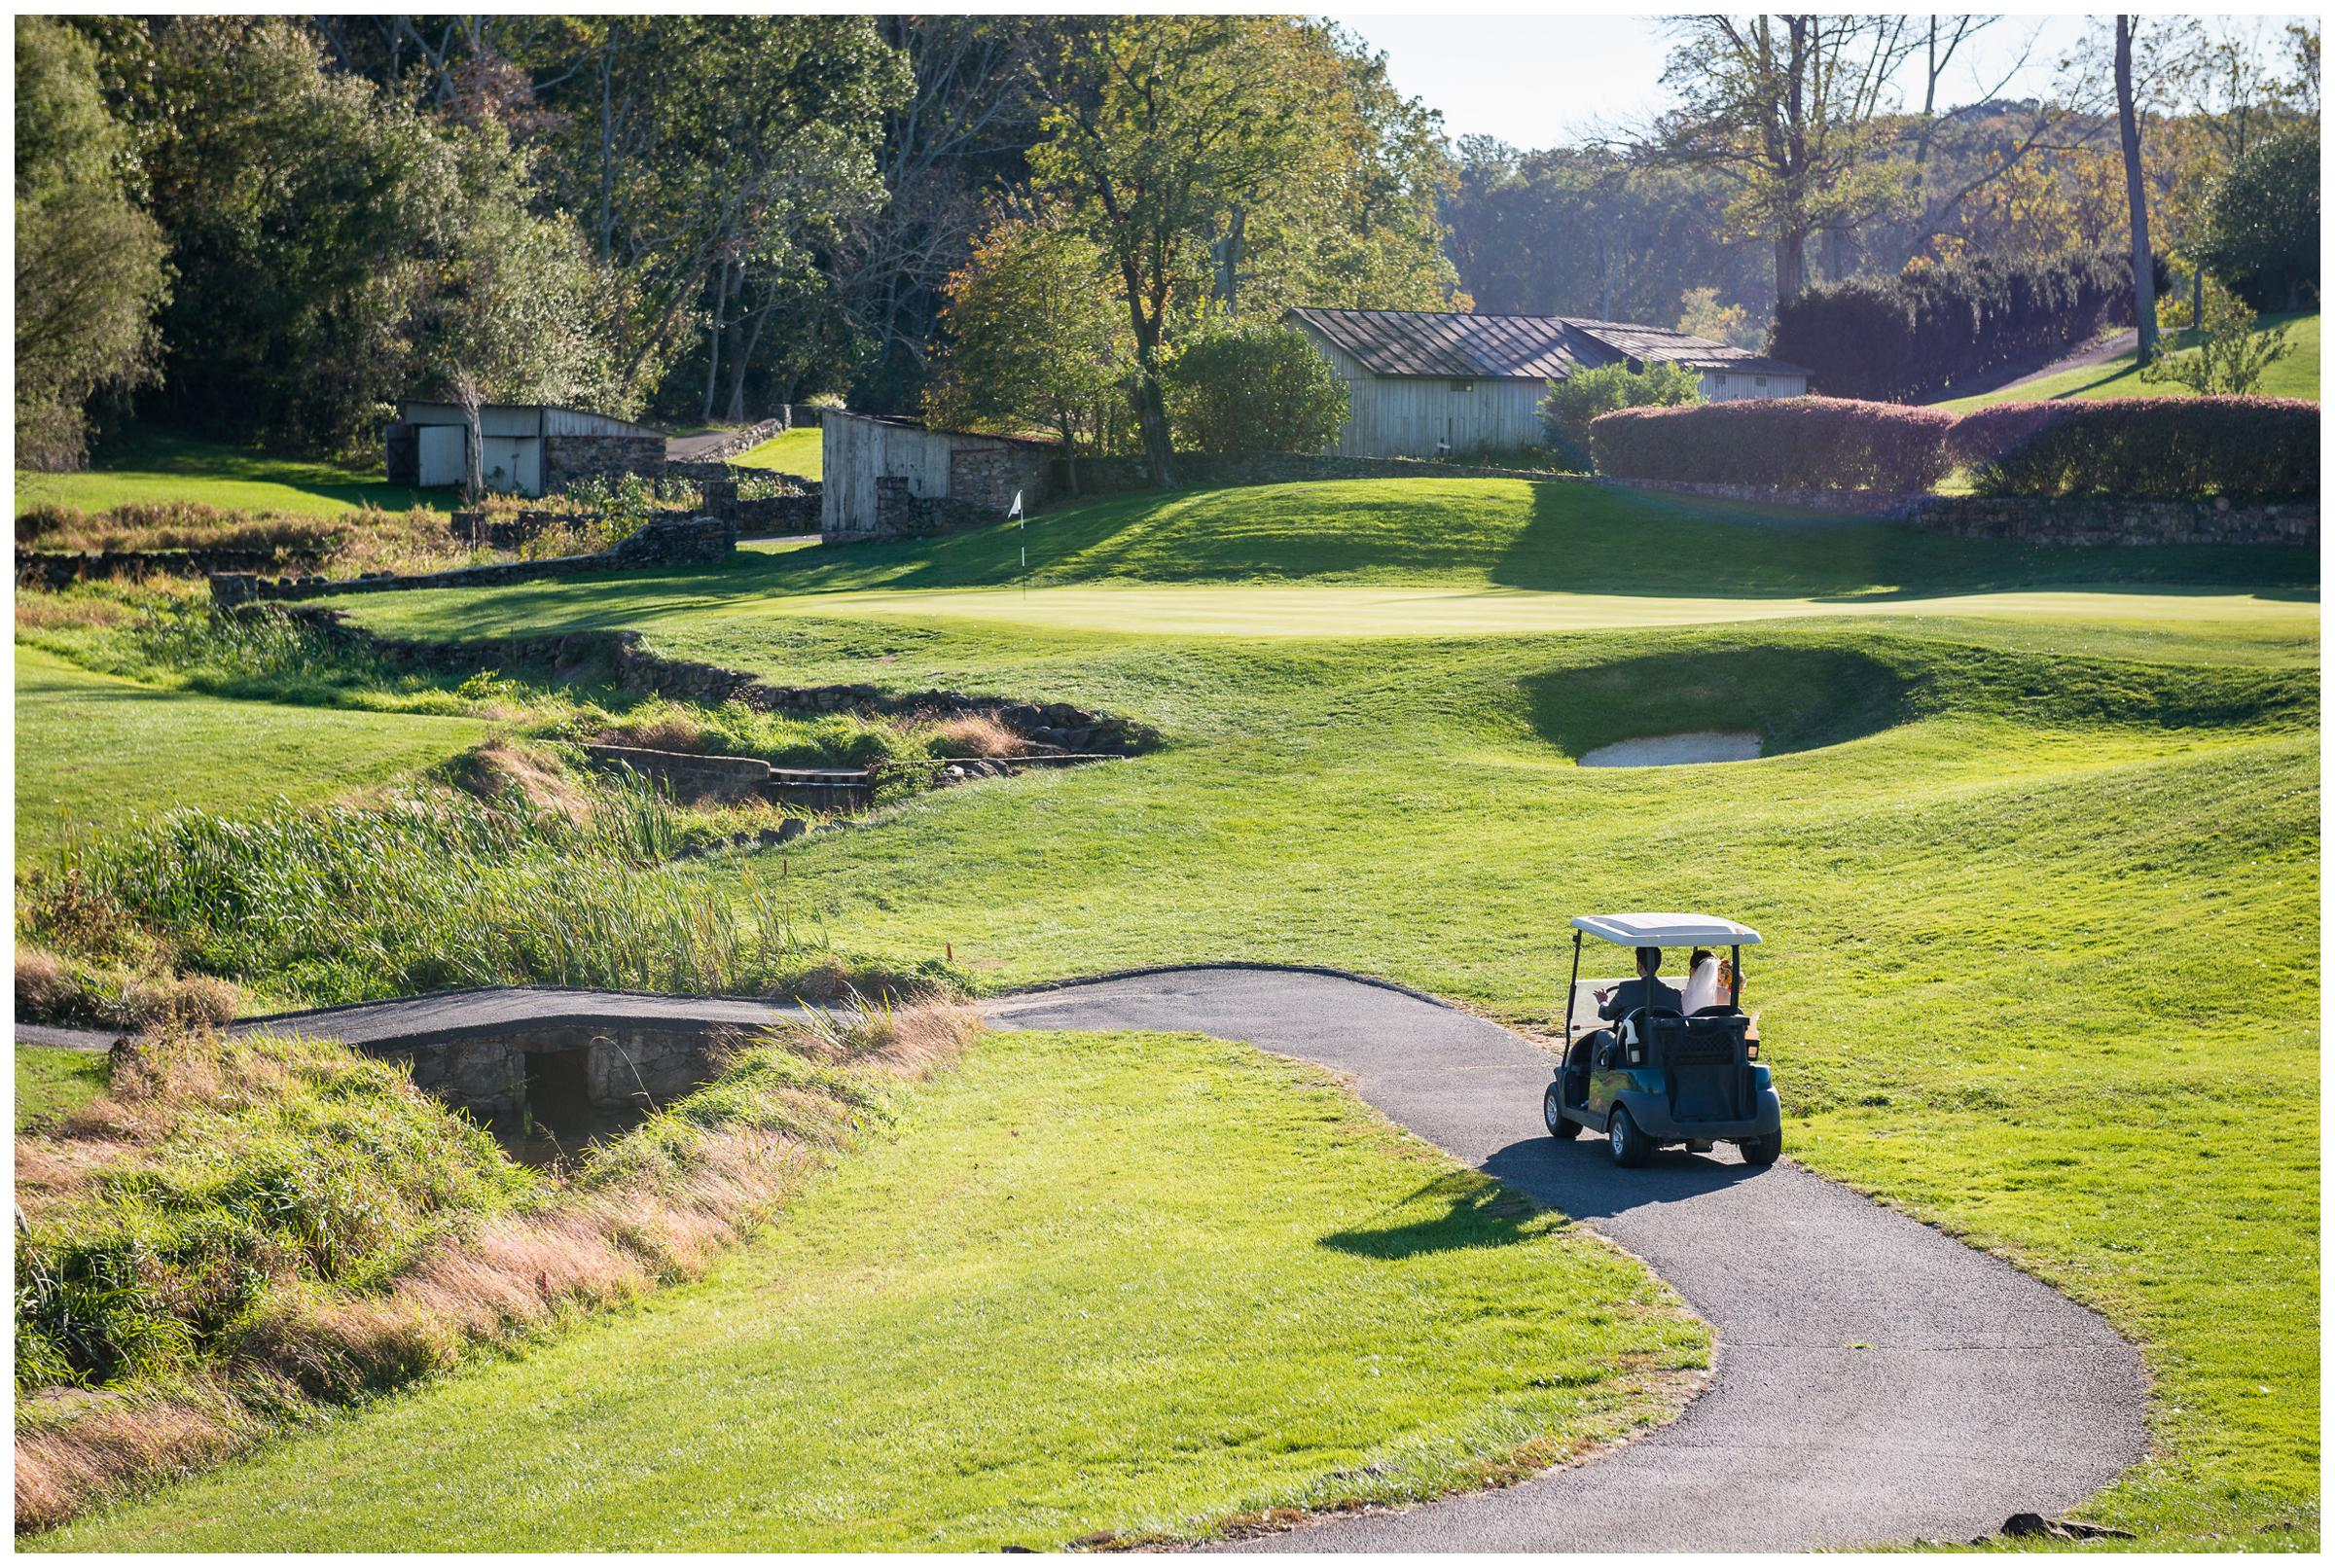 bride and groom ride in golf cart across green